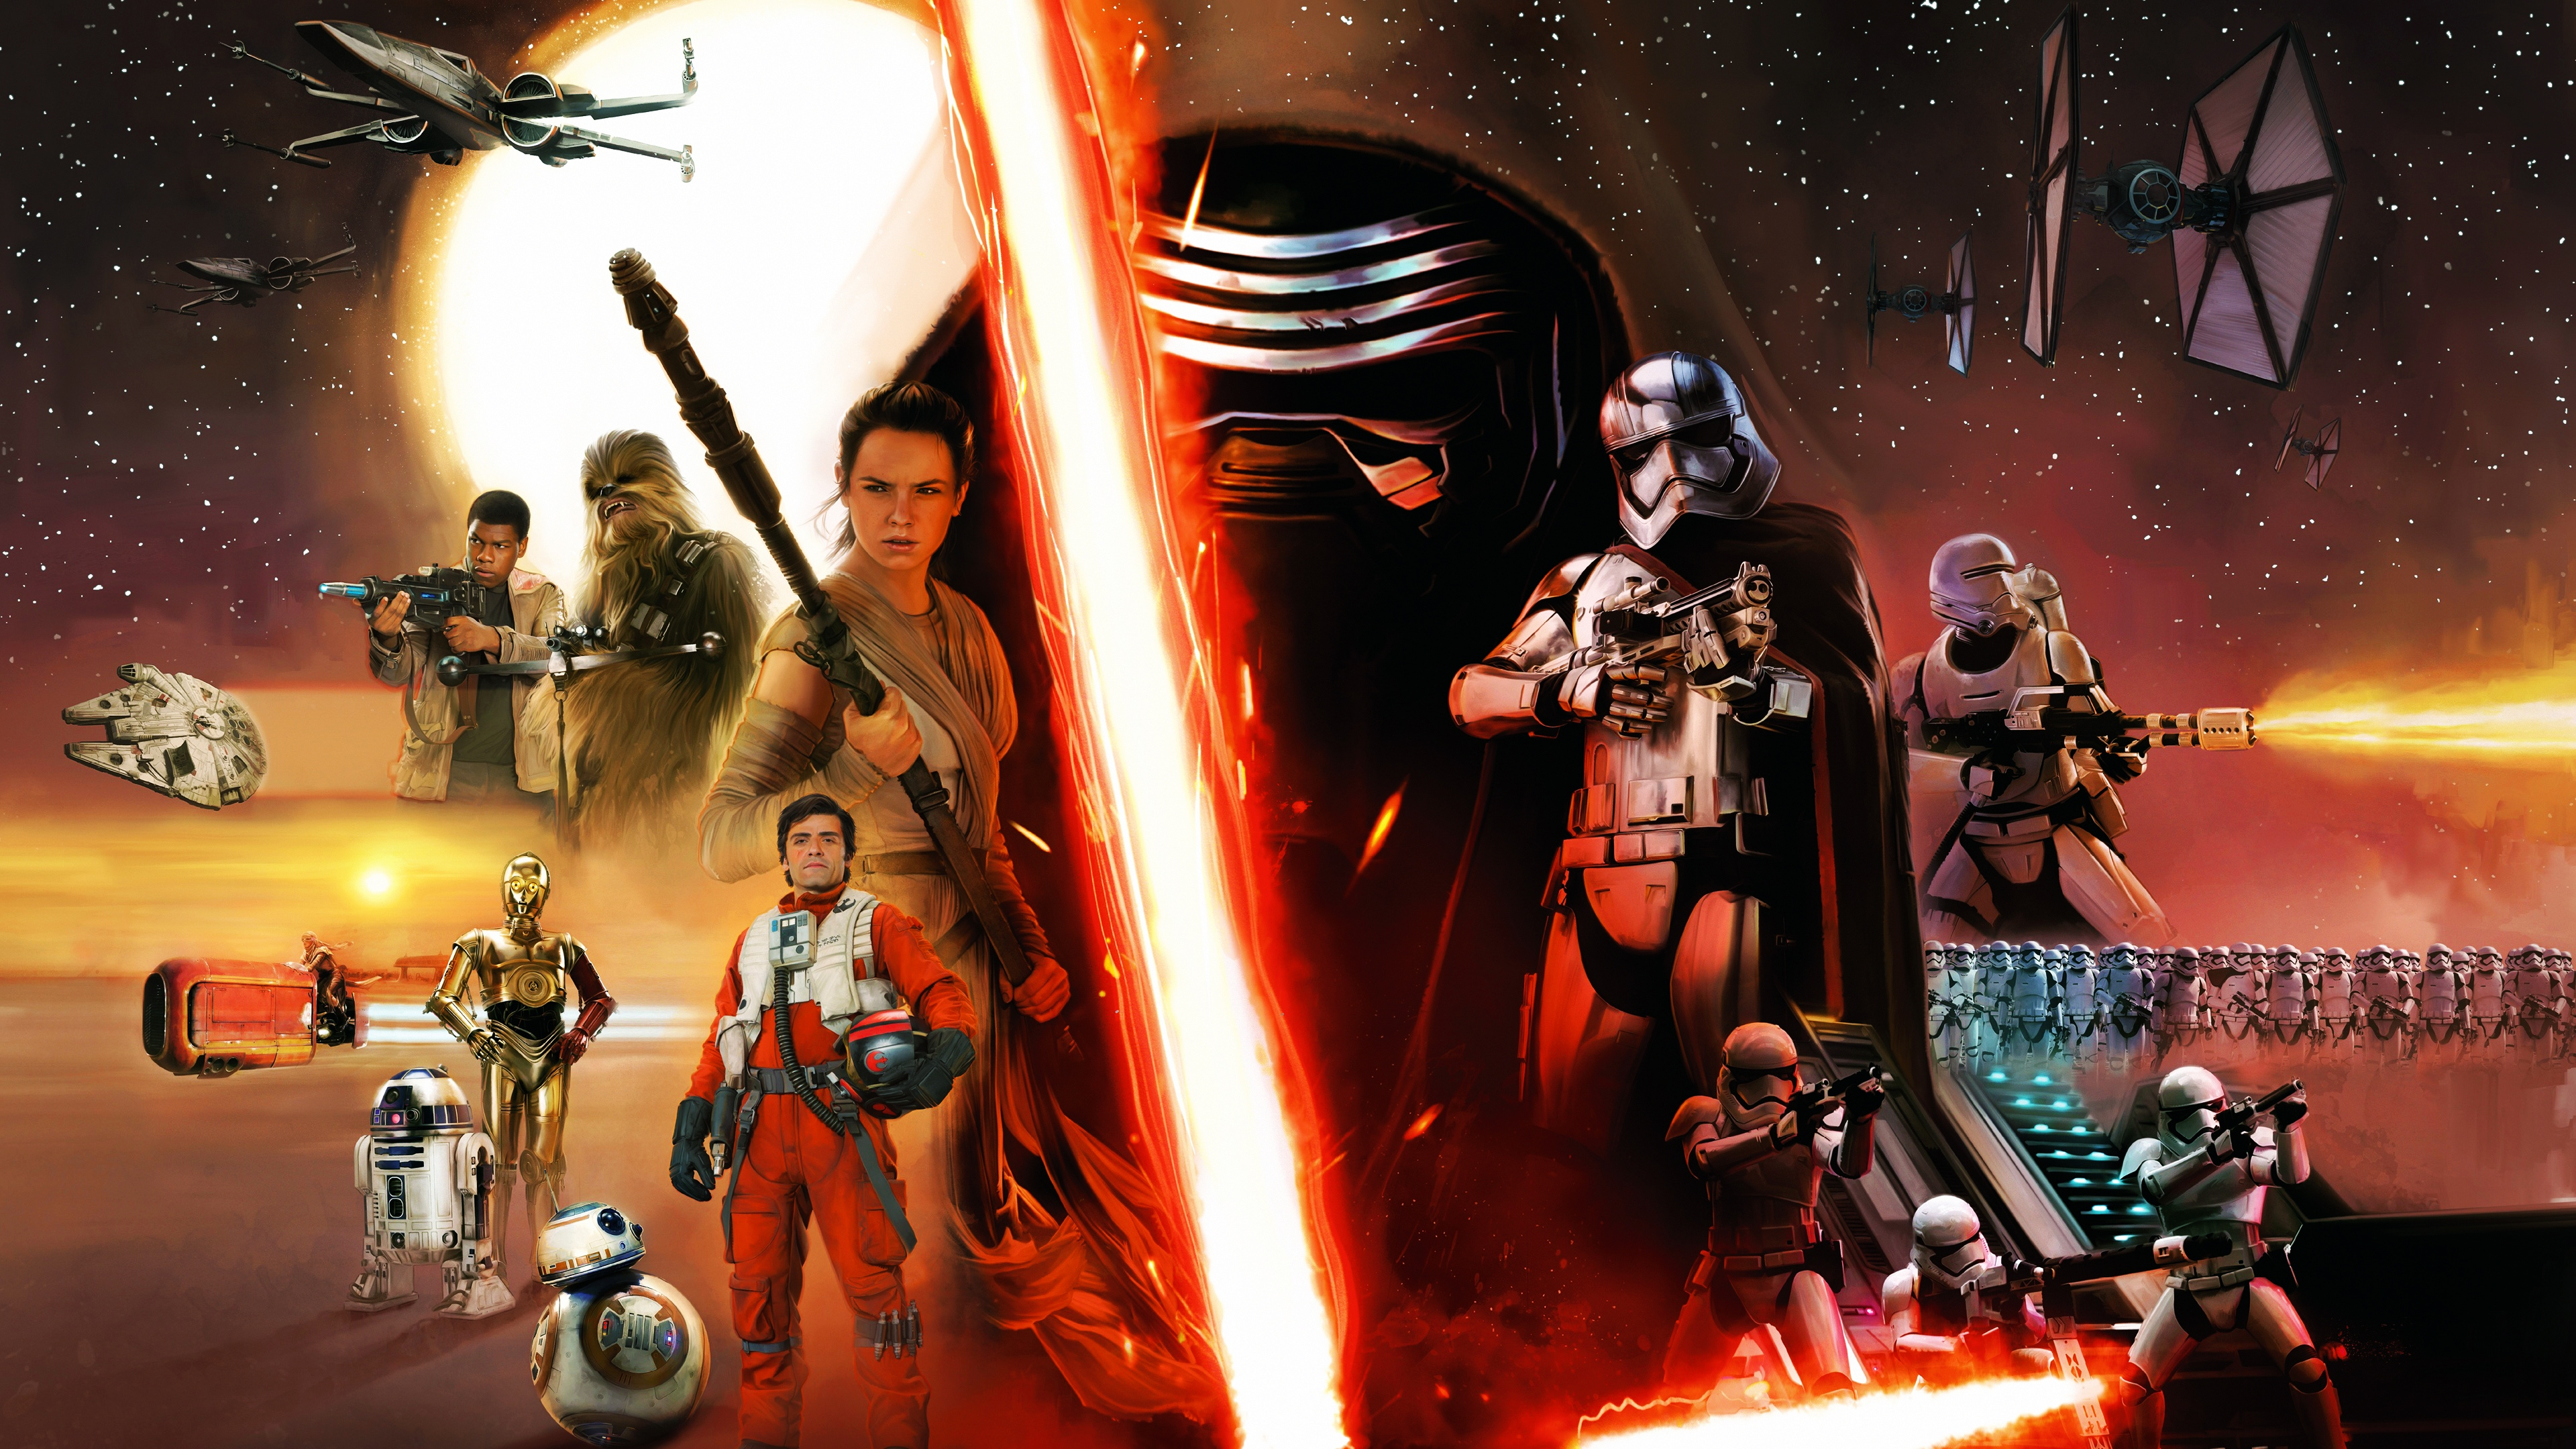 Star Wars Episode VII The Force Awakens Concept wallpaper